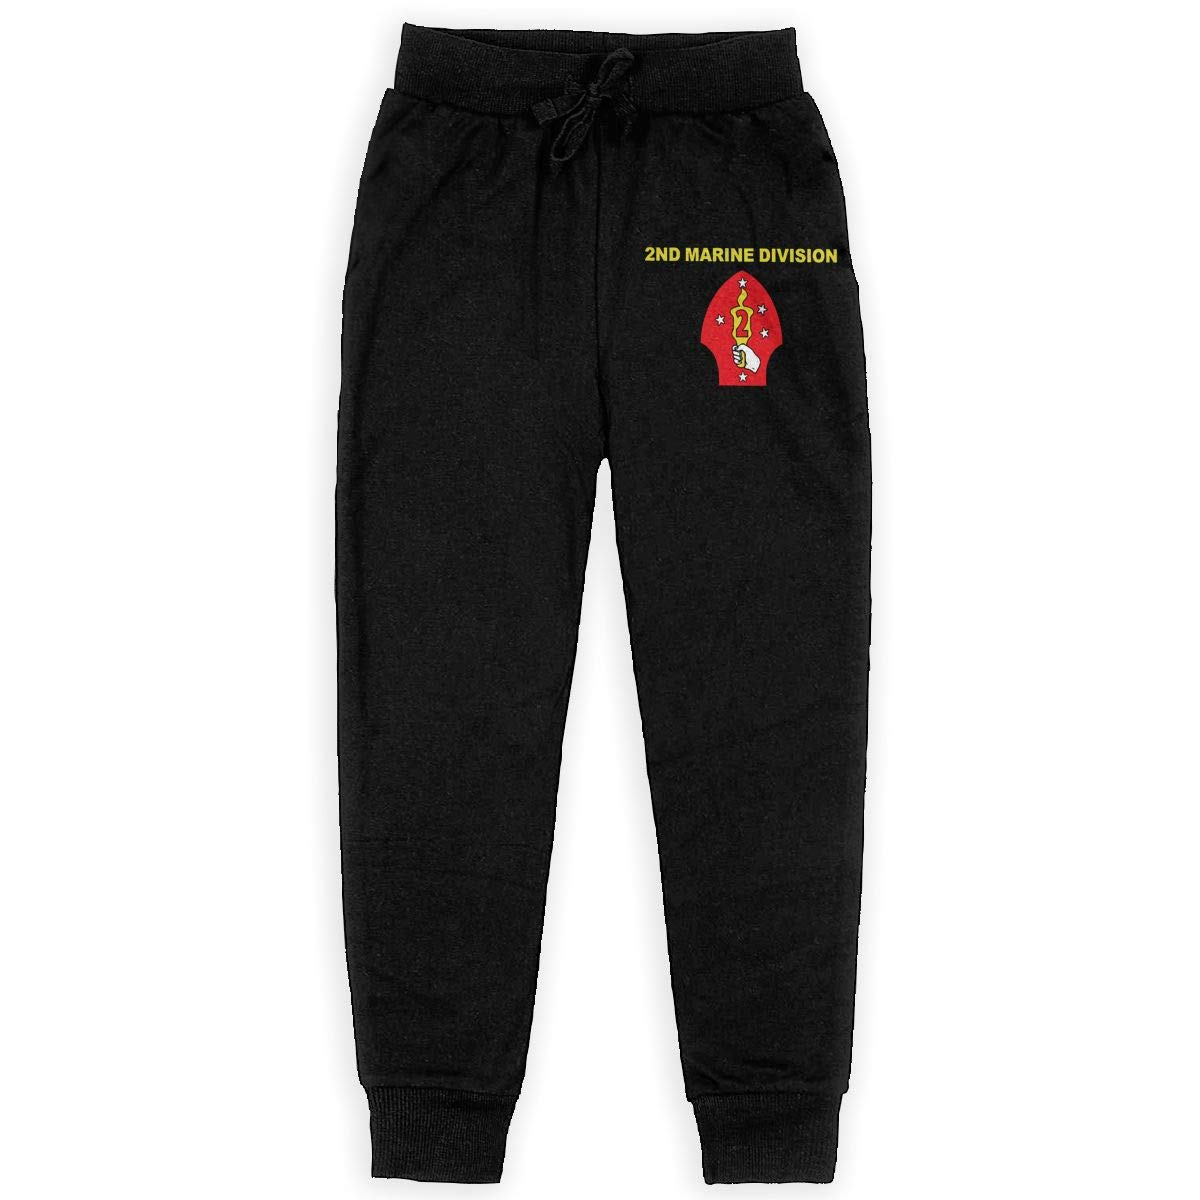 Po0owkw2op US Marine Corps 2nd Marine Division Boys Long Pants